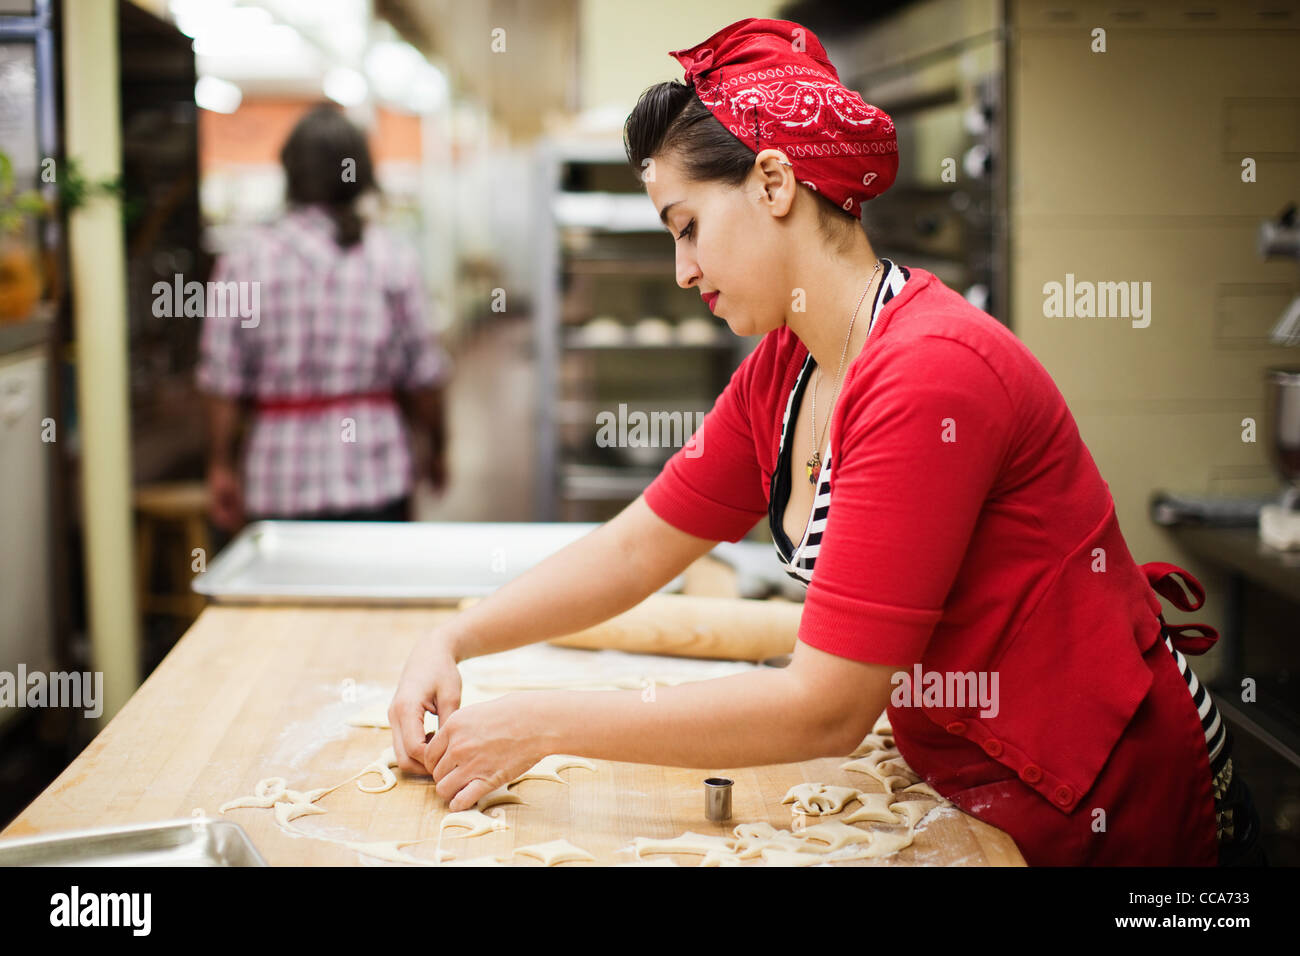 Young baker preparing food in kitchen Photo Stock